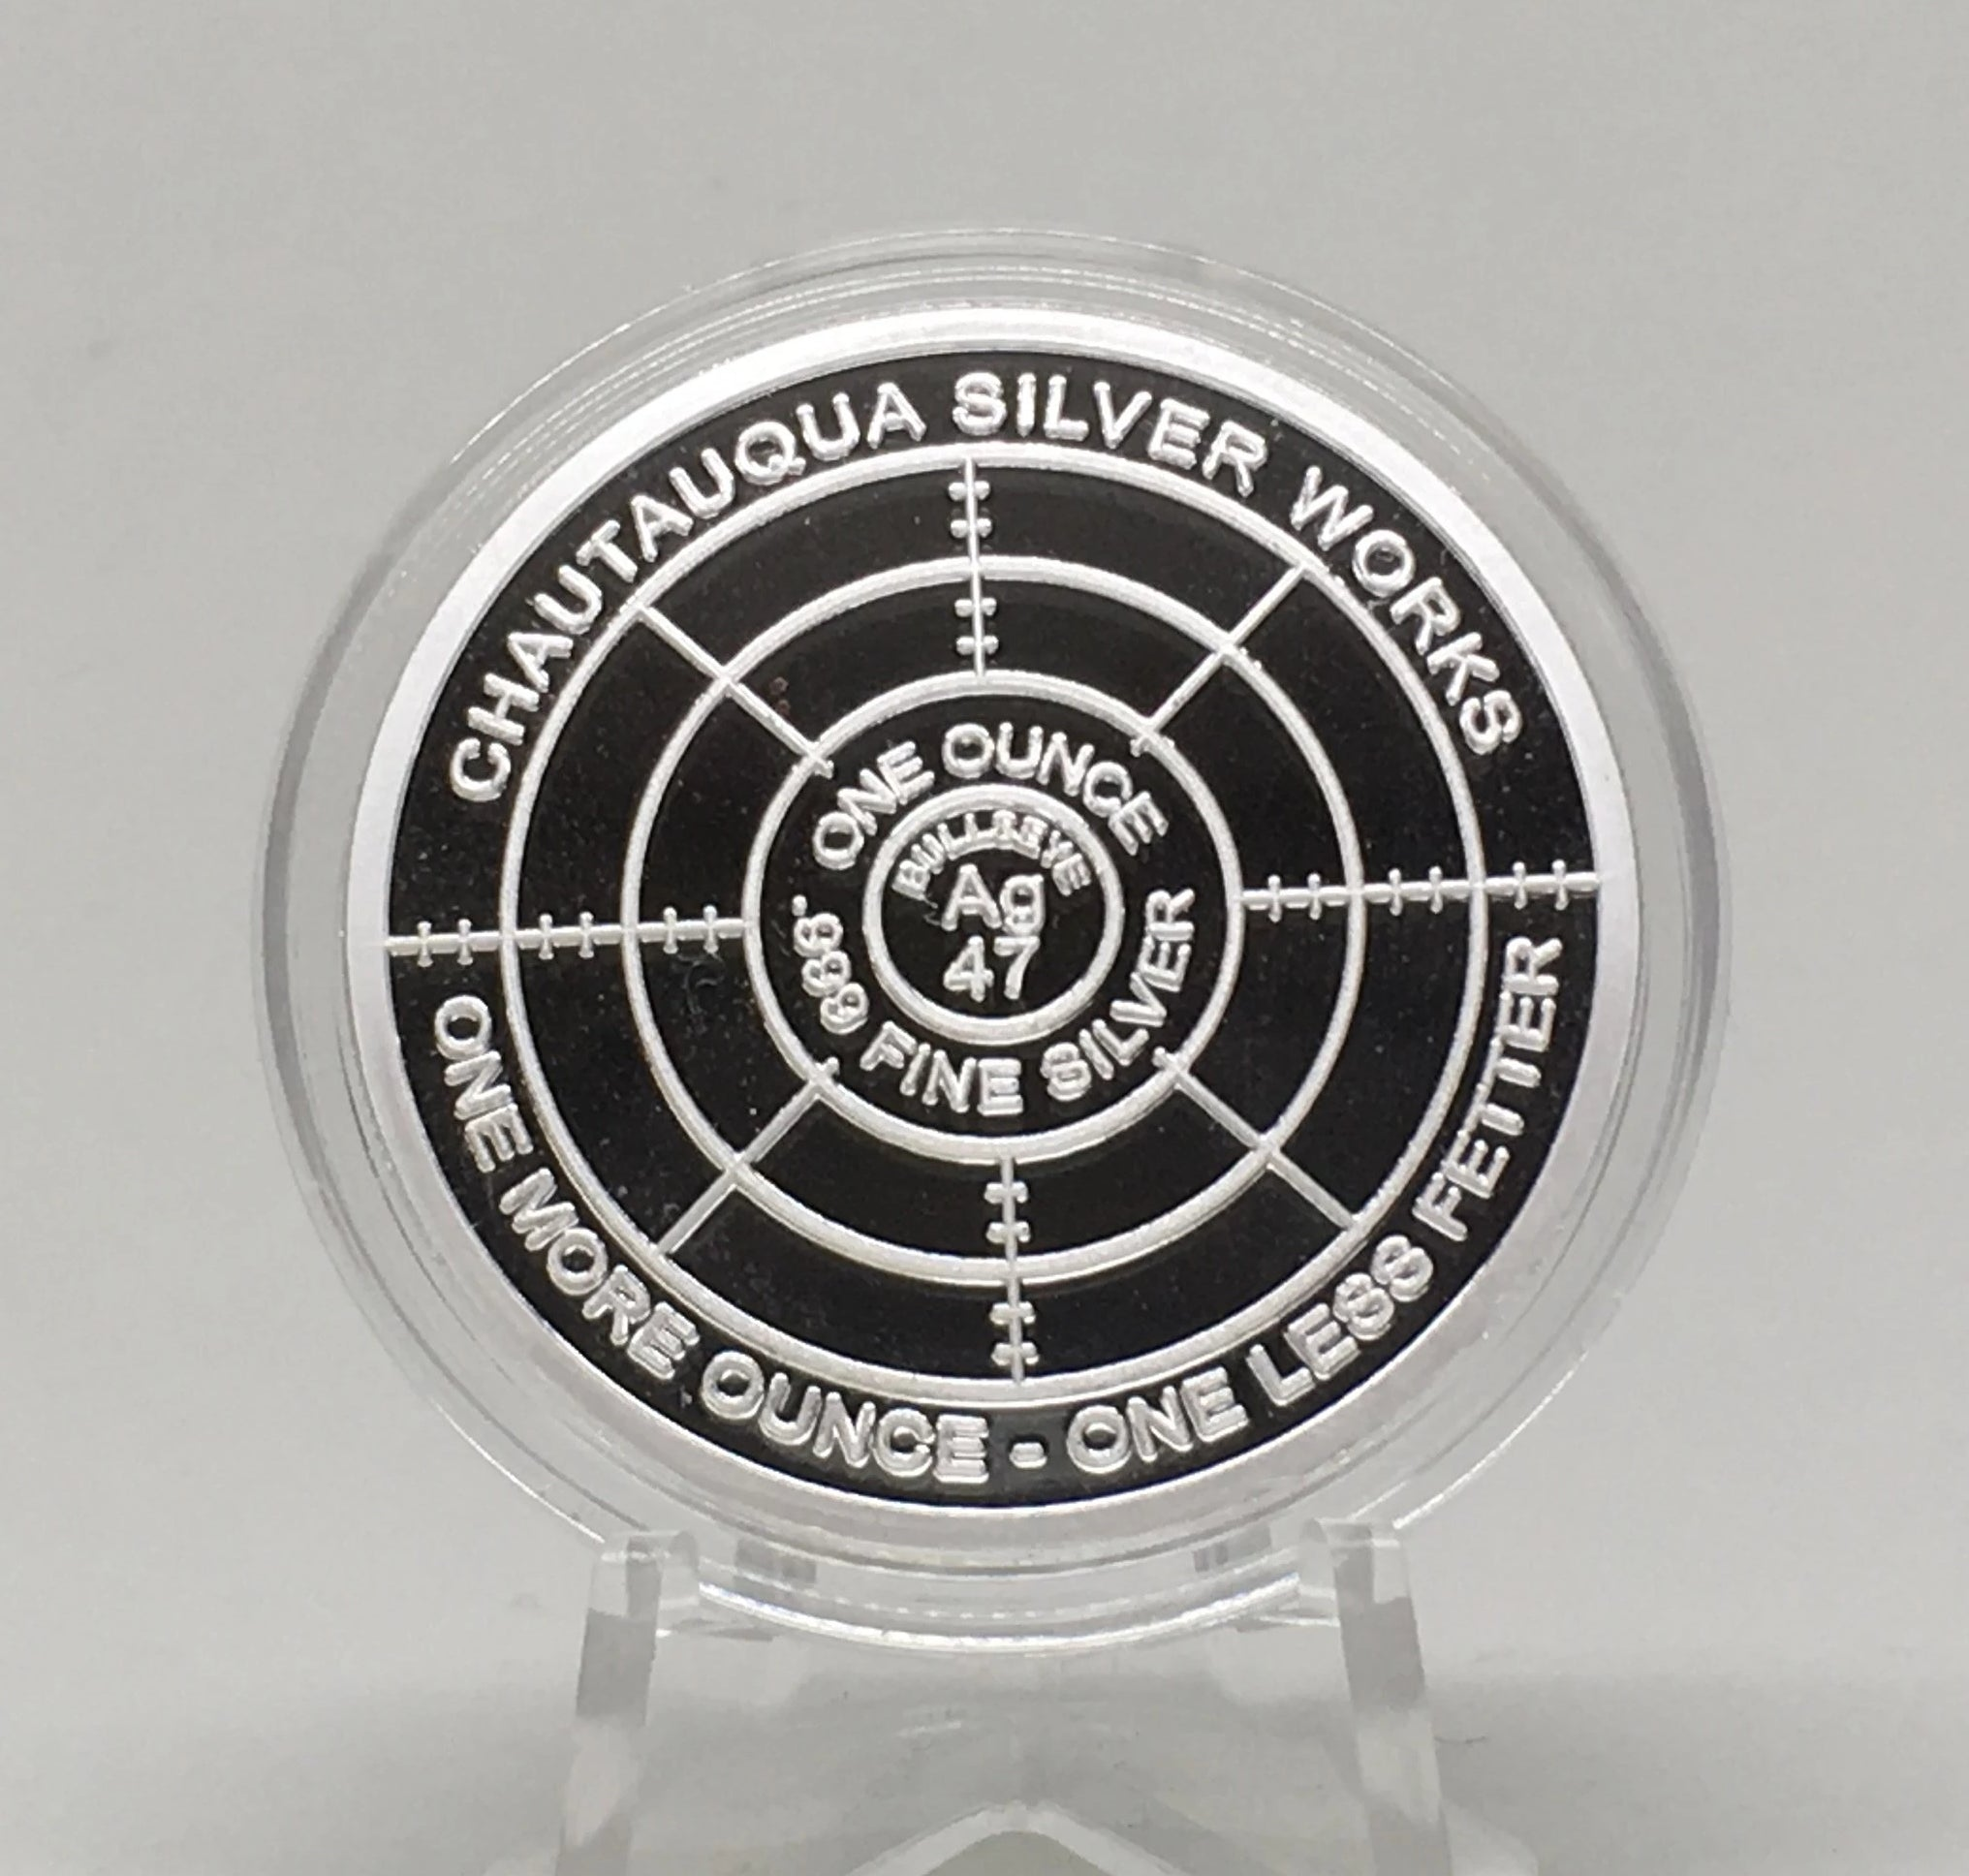 CREATE 1 OZ PROOF LIKE ROUND//CHAUTAUQUA SILVER WORKS//THROUGH THAT DOOR SERIES